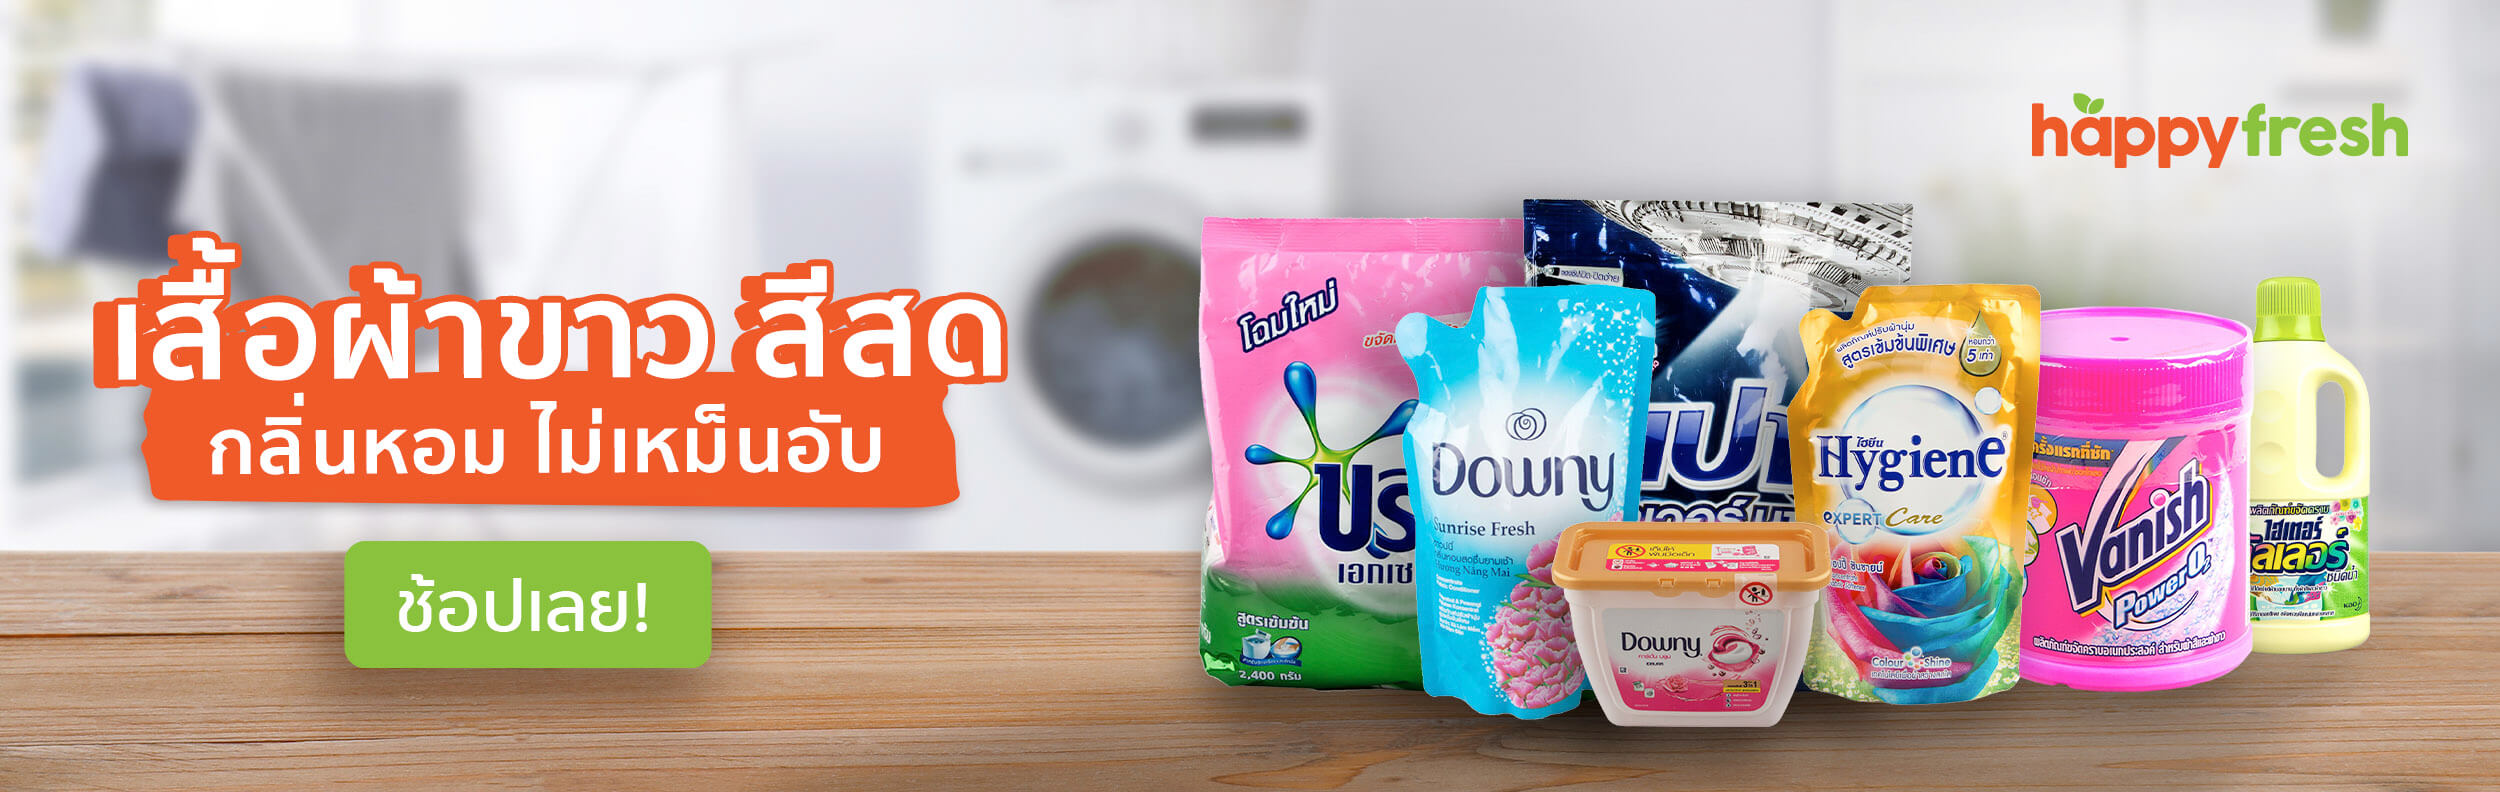 HappyFresh_Promote_Products_Banner_Laundry